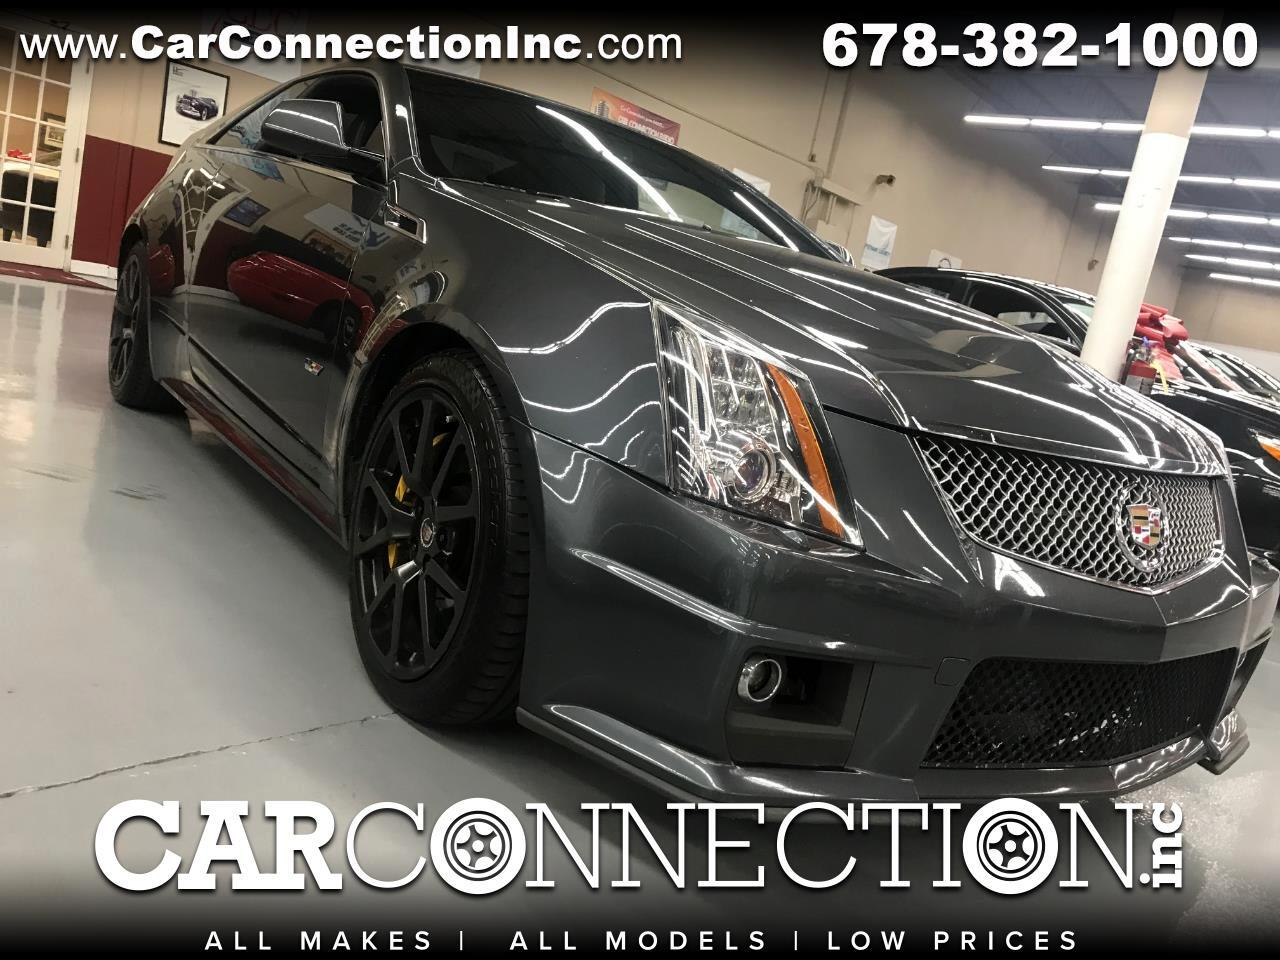 2012 Cadillac CTS-V Coupe Lingenfelter